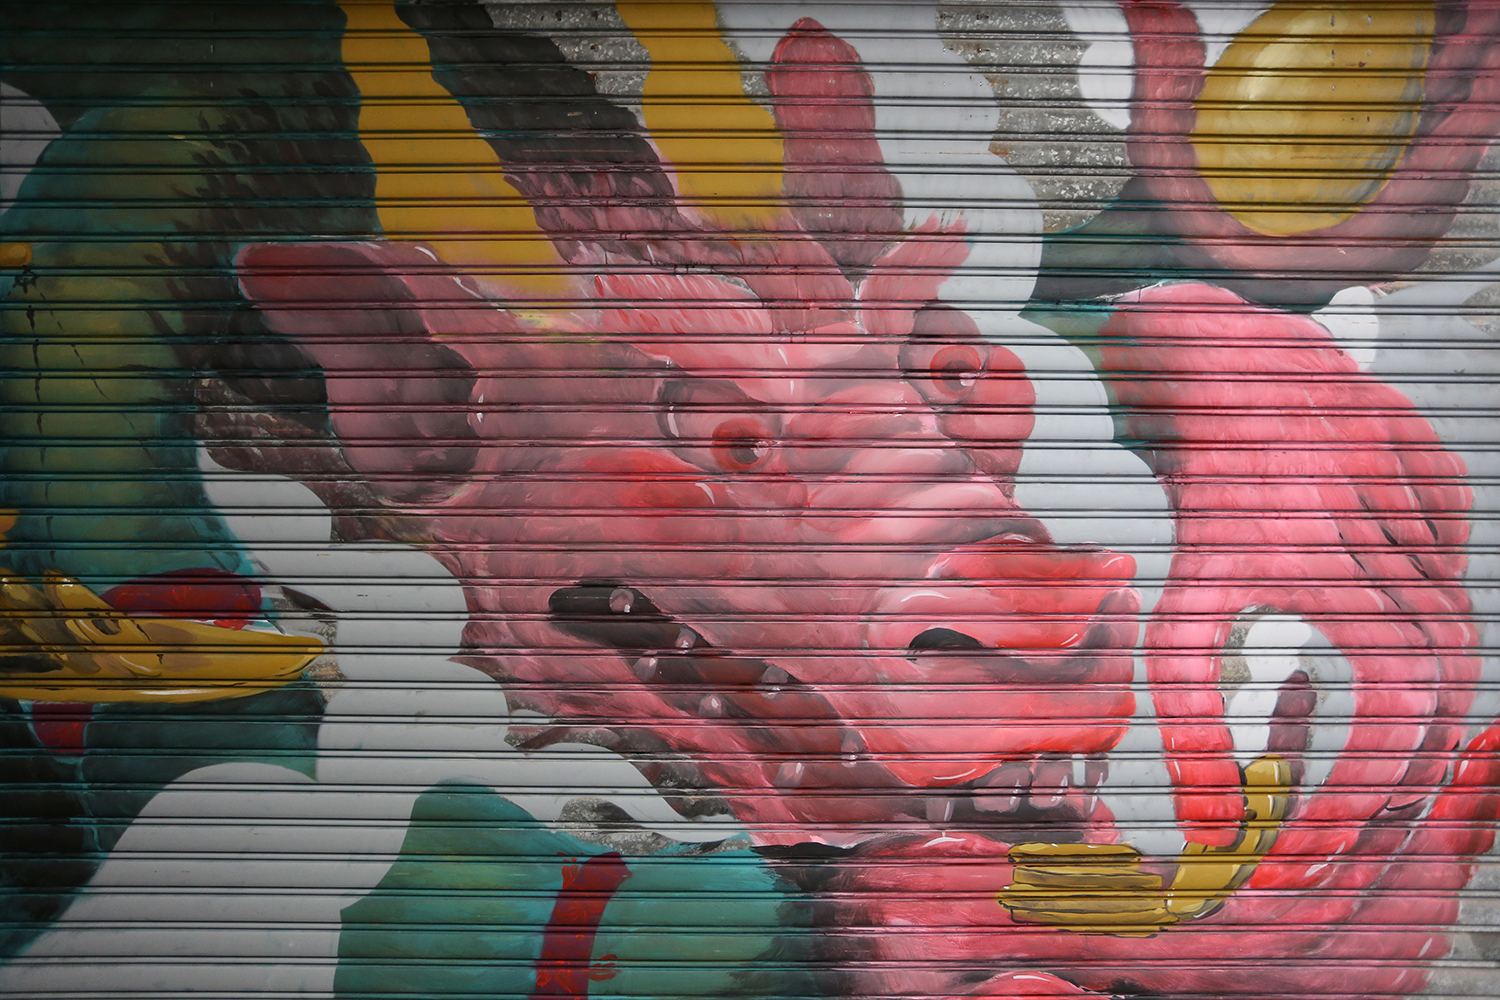 barlo-new-shutter-at-stanley-market-hong-kong-02